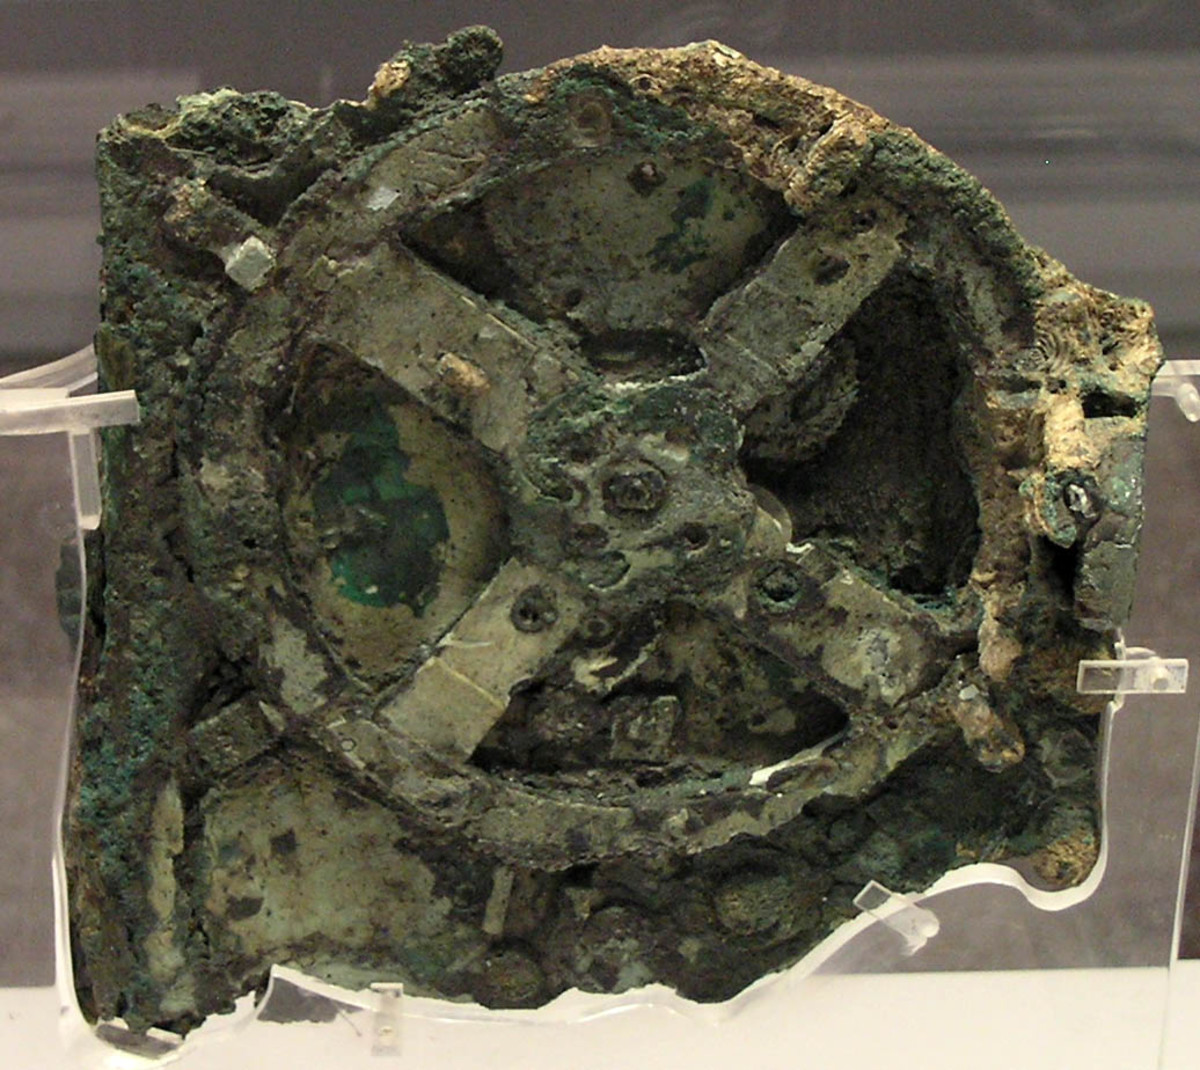 An actual image of the Antikythera mechanism.